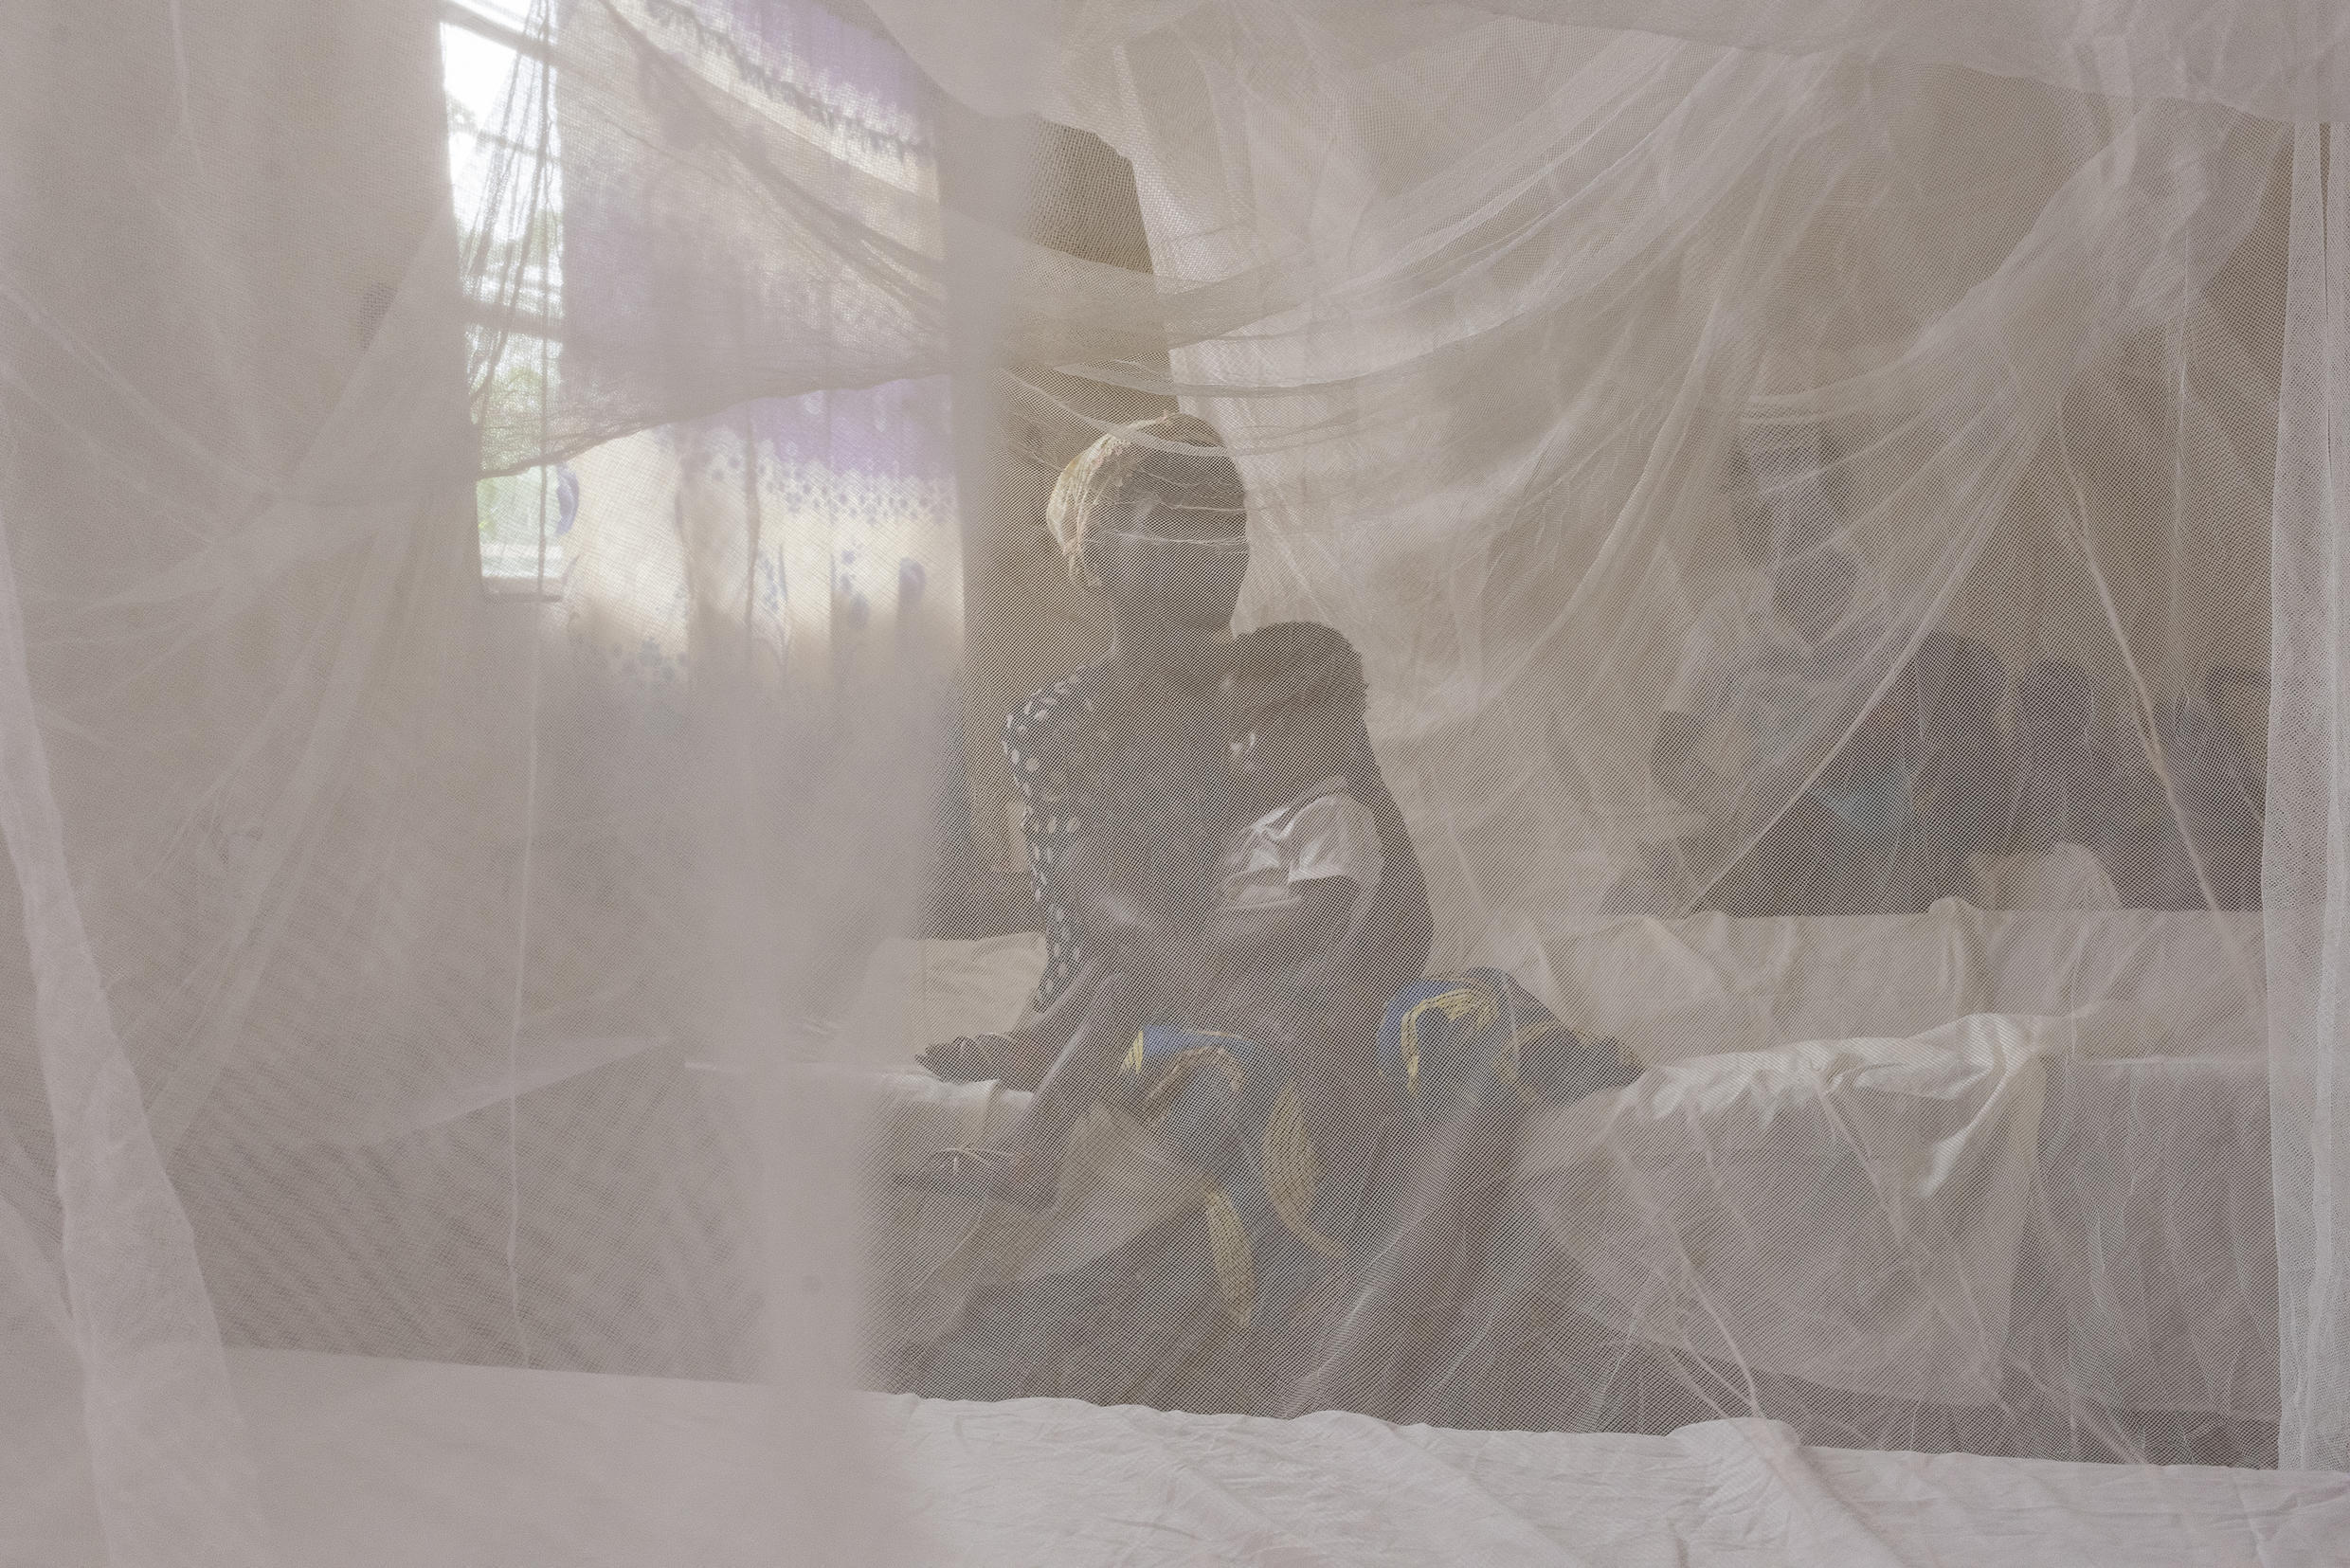 There is no vaccine against malaria, and the World Health Organization says sleeping under a mosquito net is the best protection